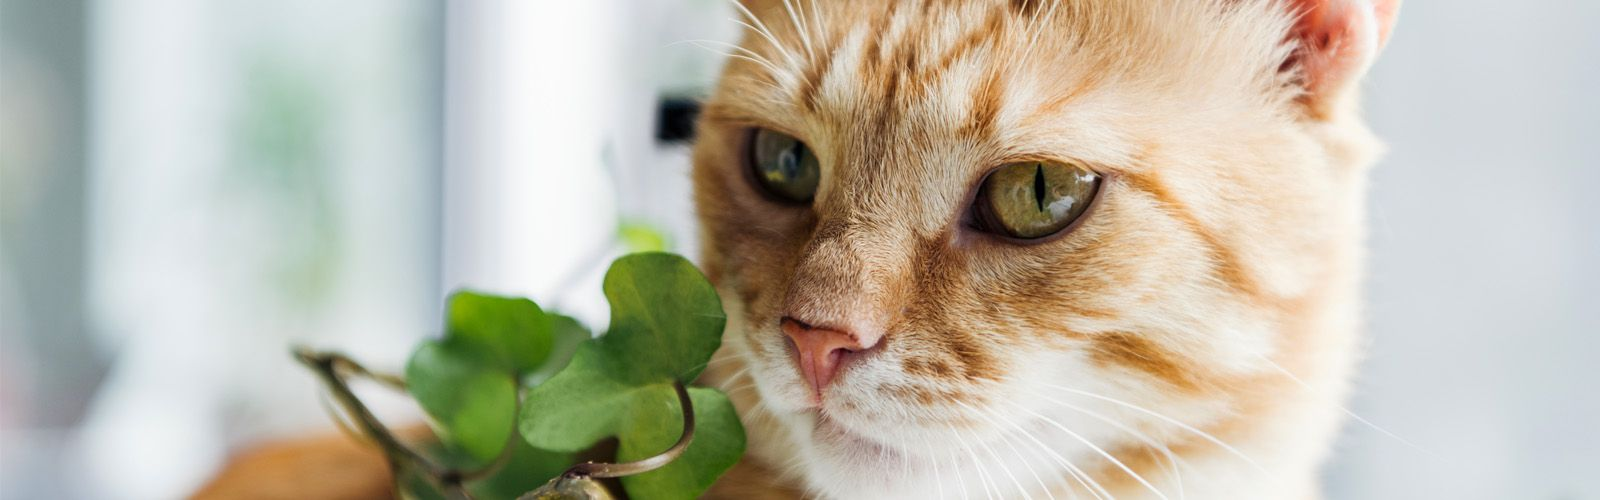 cat and houseplant